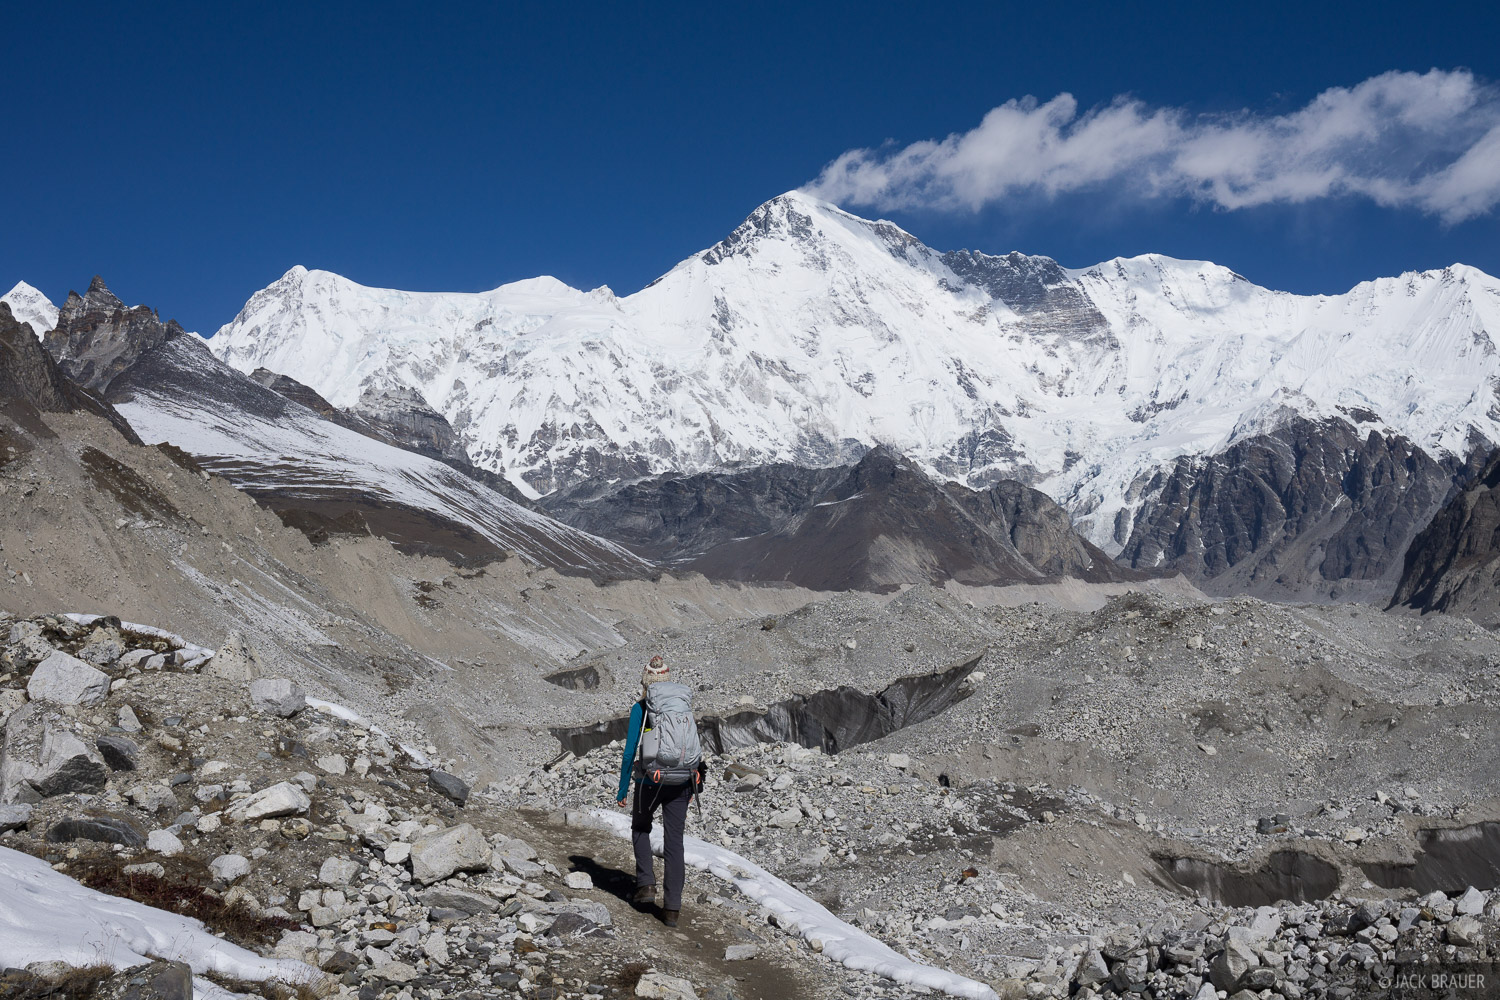 Himalaya,Khumbu,Nepal,Ngozumba Glacier, Cho Oyu, hiking, photo